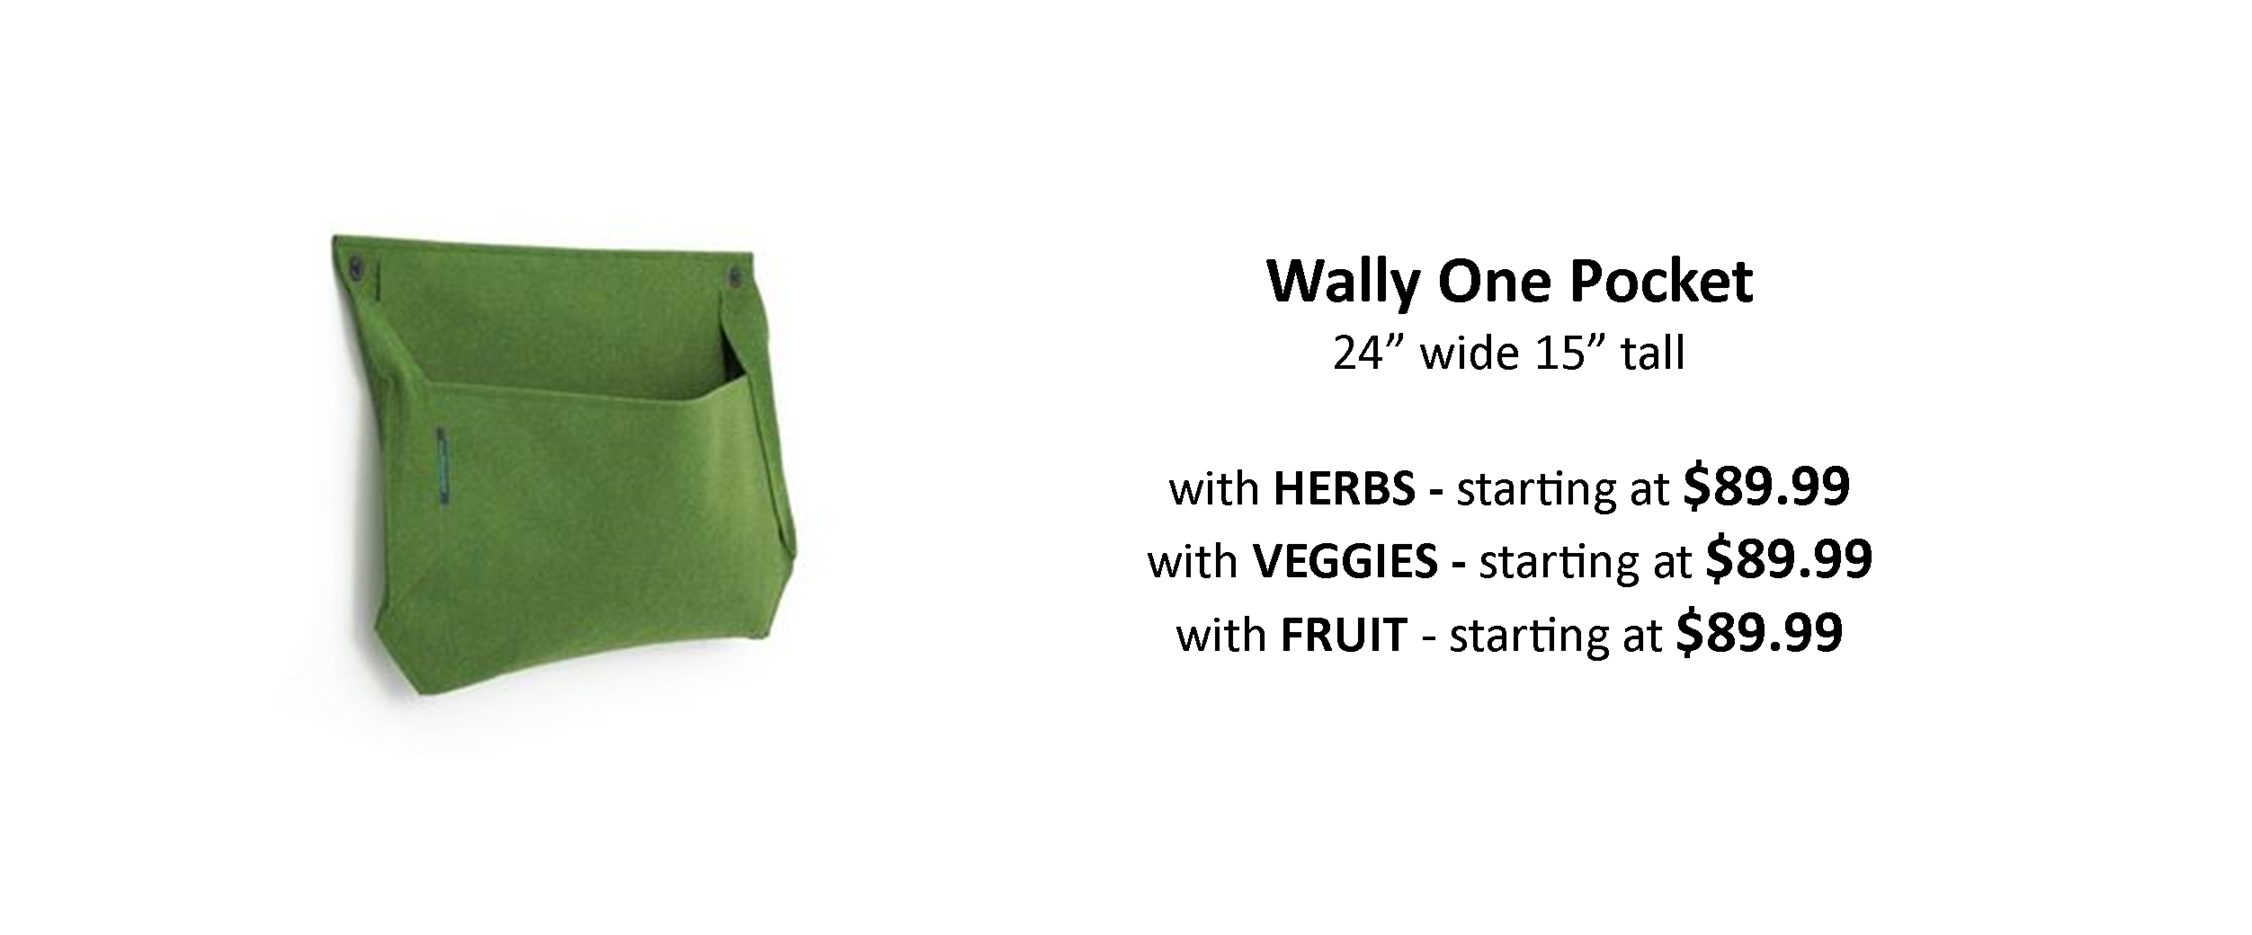 Wally One Pocket with Edible Plants